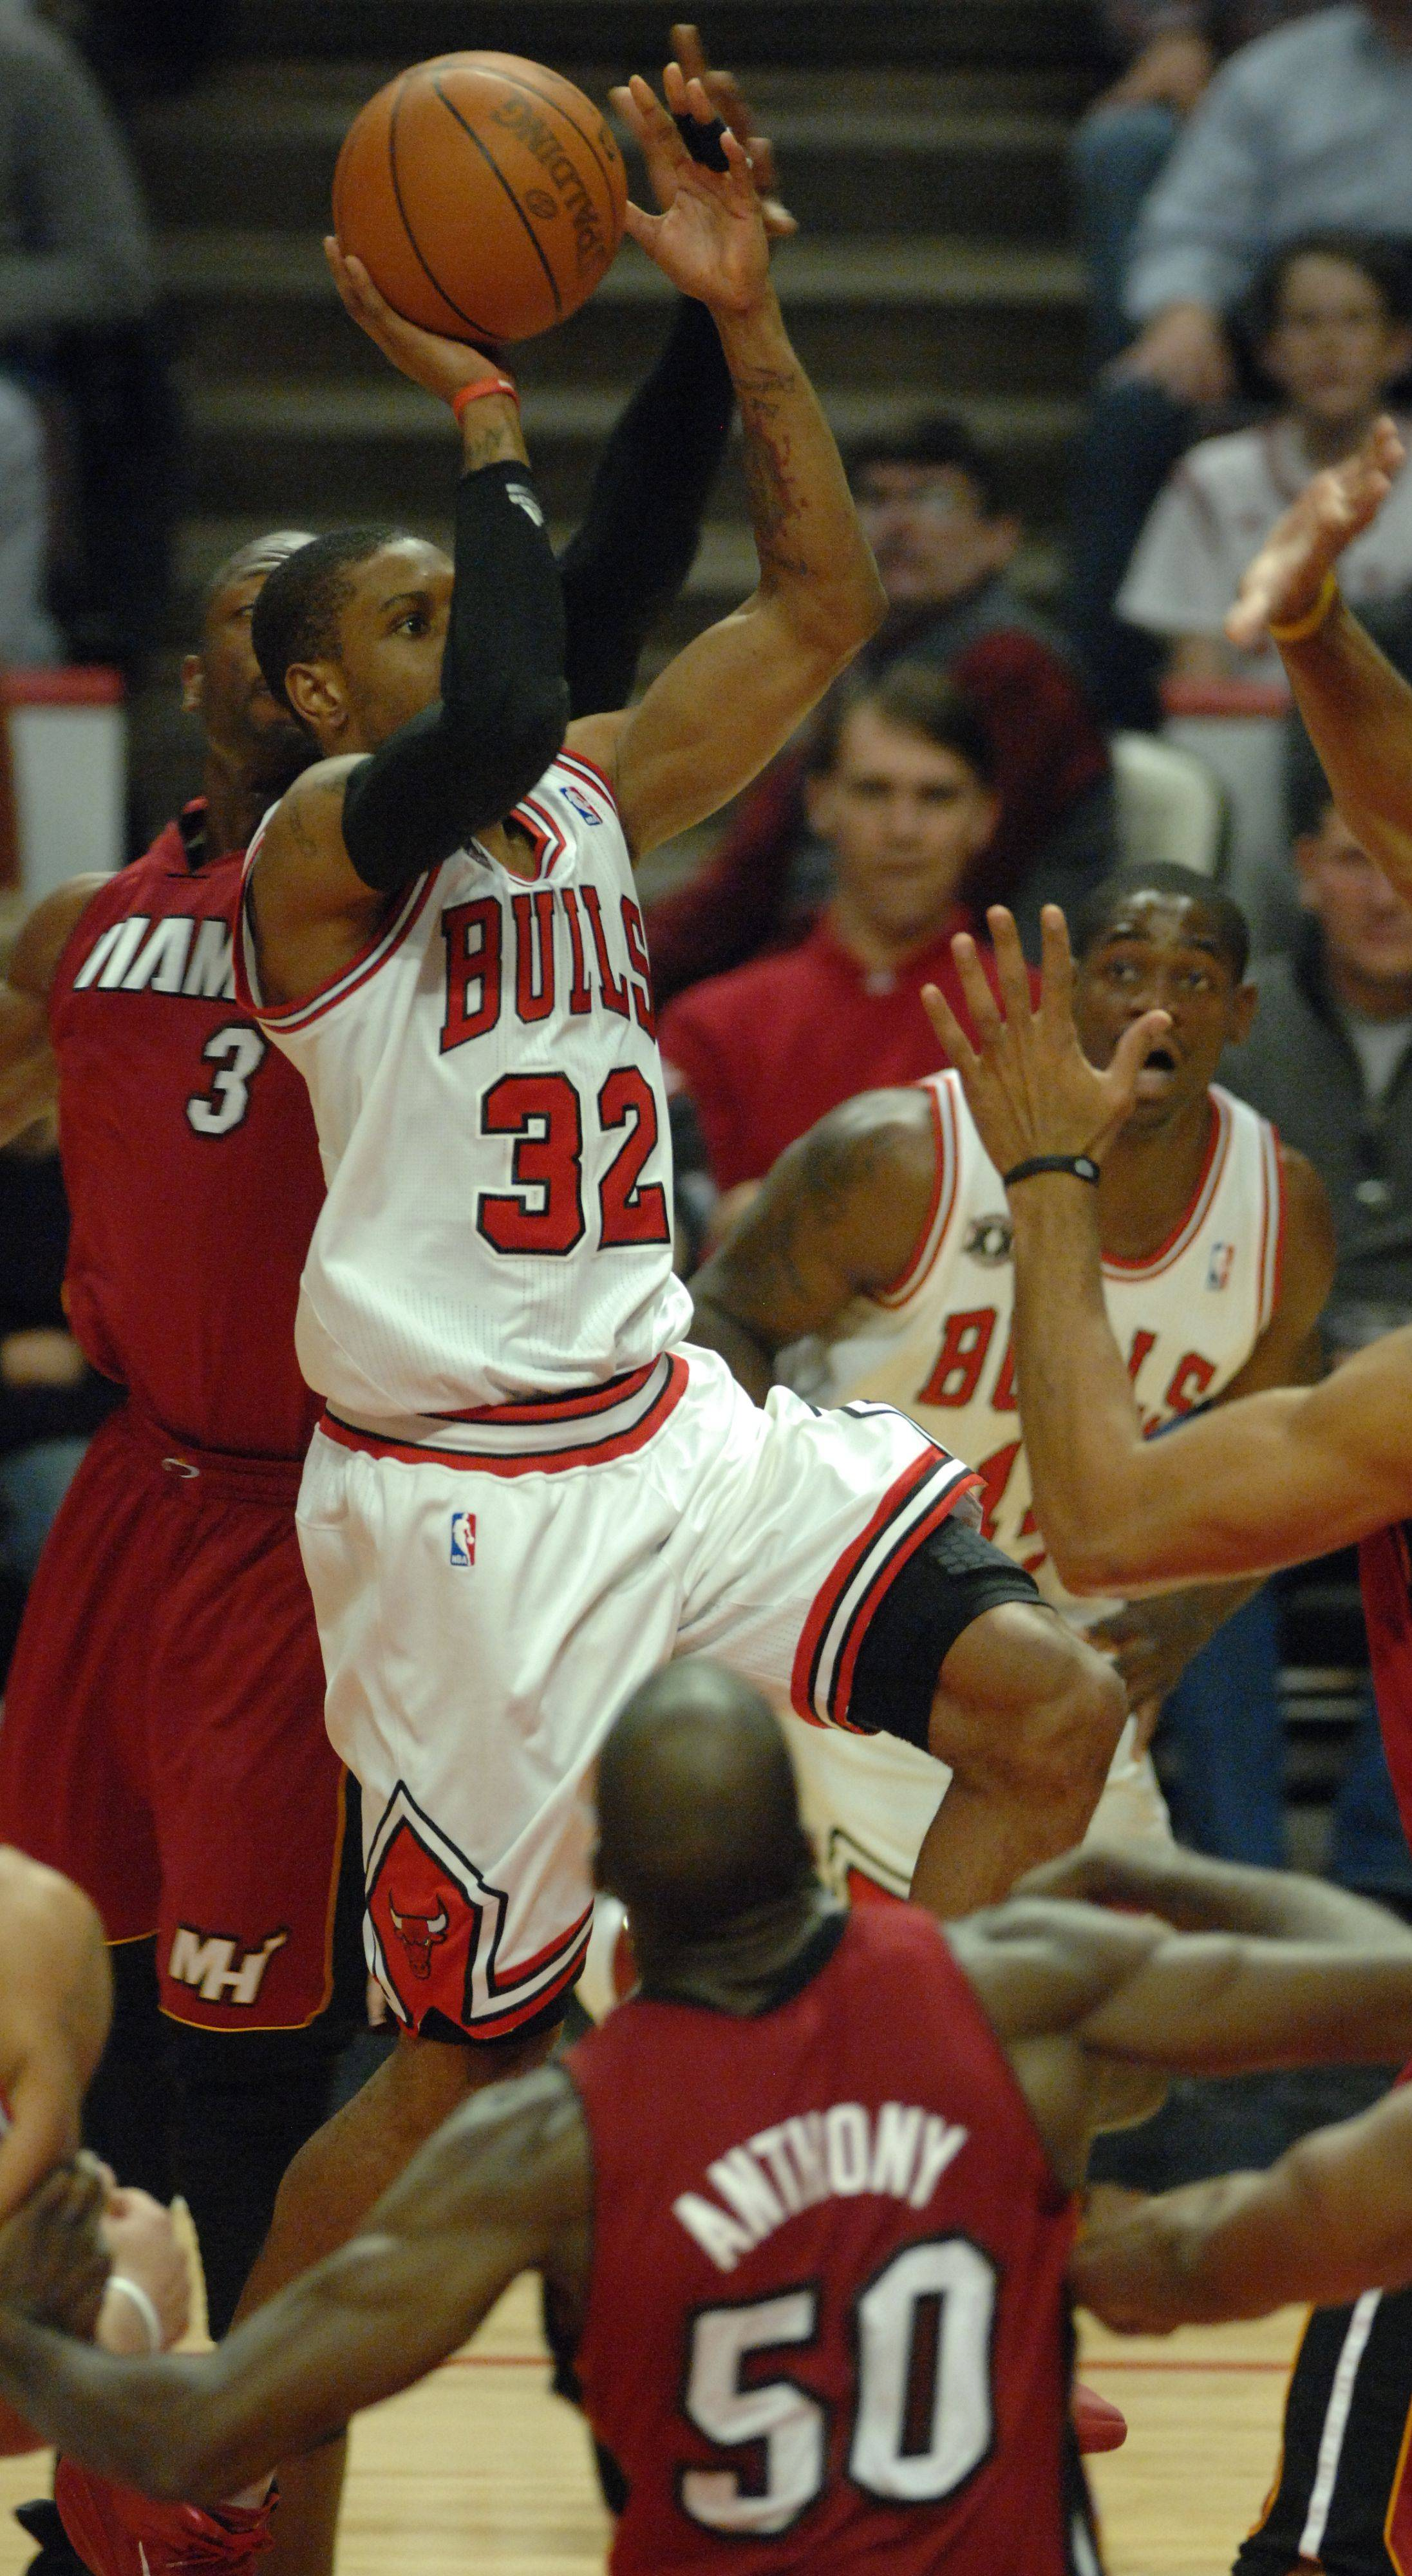 Chicago Bulls point guard C.J. Watson (32) shoots through Miami defenders in the fourth quarter Saturday at the United Center.